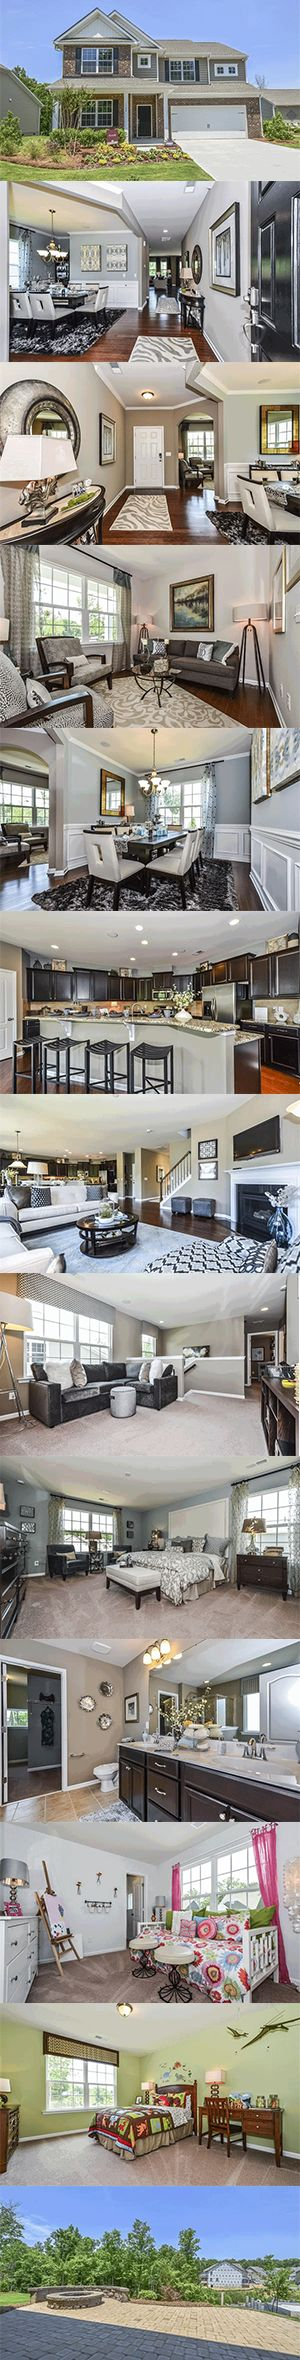 Forsyth from @lennarcharnc - A 4 bedroom, 3.5 bath home featuring a large kitchen open to a family room, formal dining and living room, an optional study, a spacious owner's suite upstairs, plus a bonus room or optional 5th bedroom and loft.